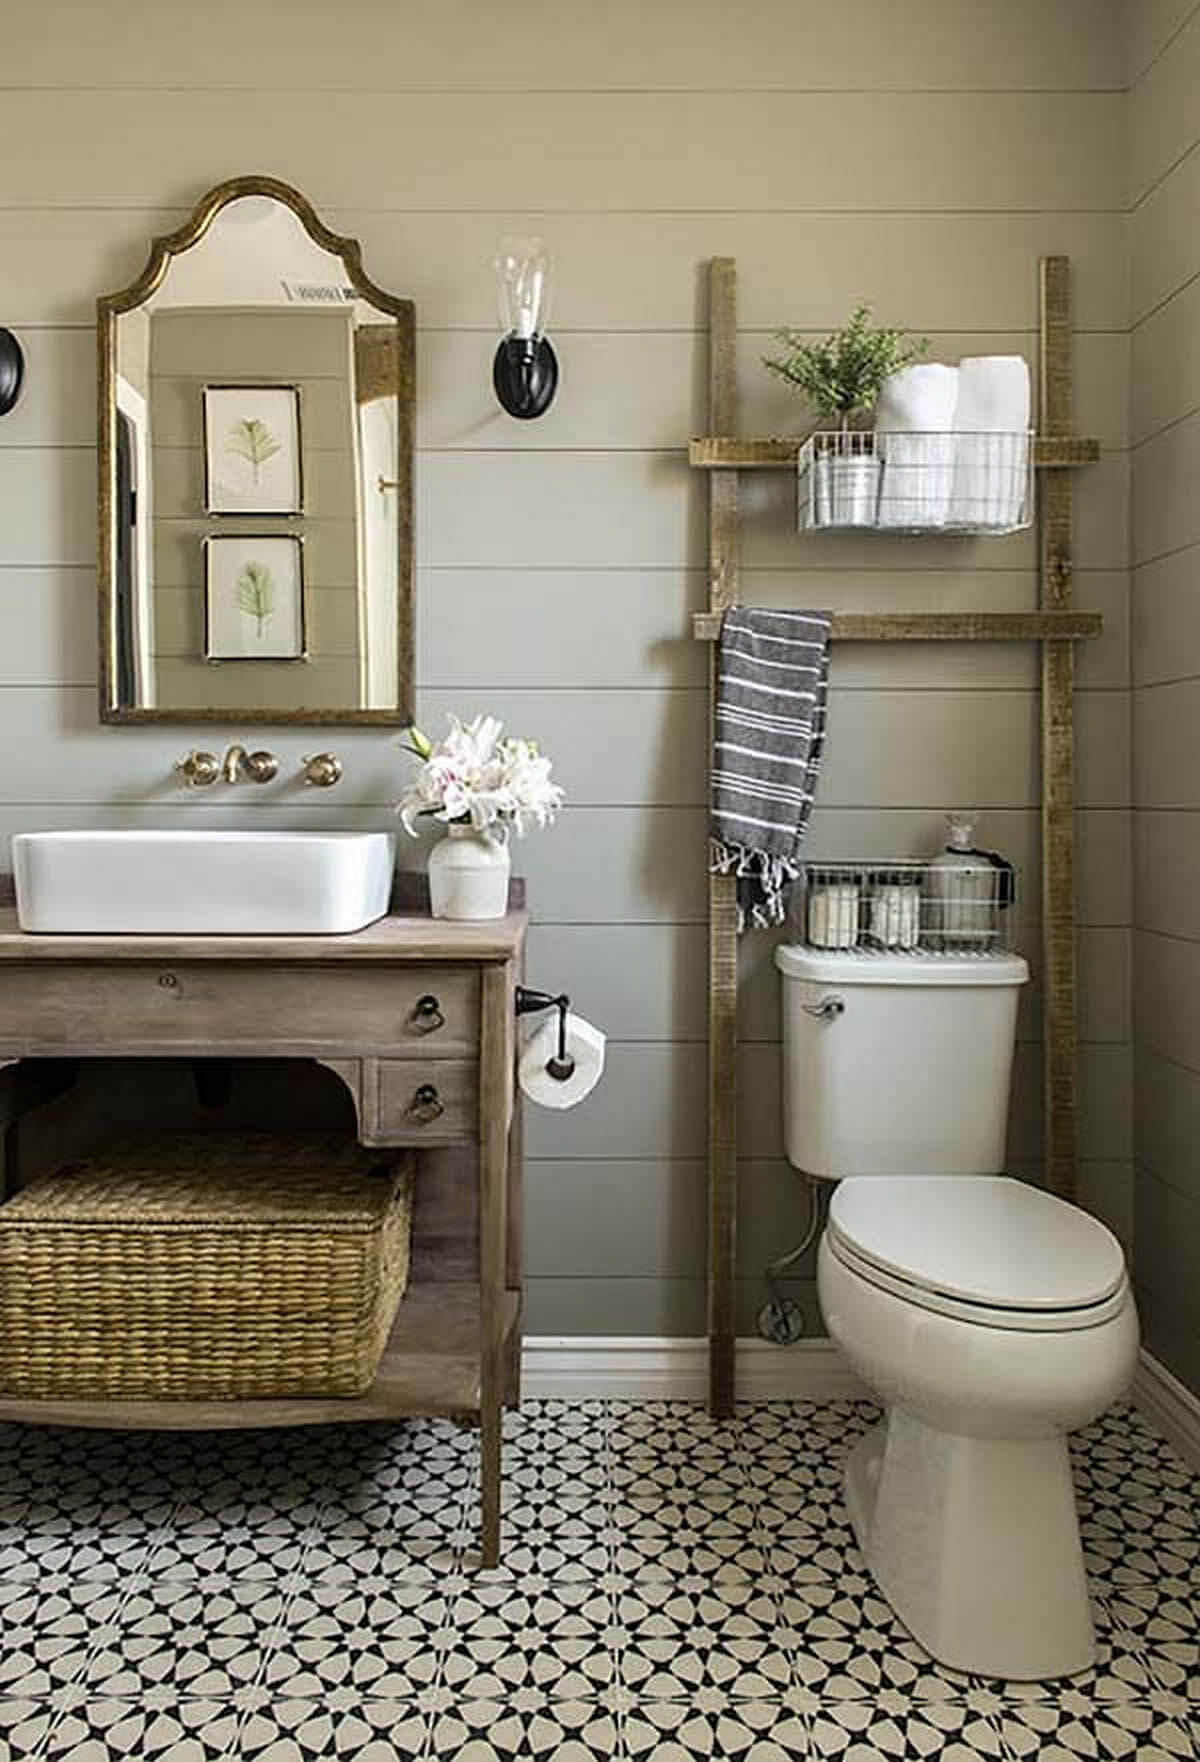 59 Best Farmhouse Wall Decor Ideas For Bathroom: 36 Best Farmhouse Bathroom Design And Decor Ideas For 2020